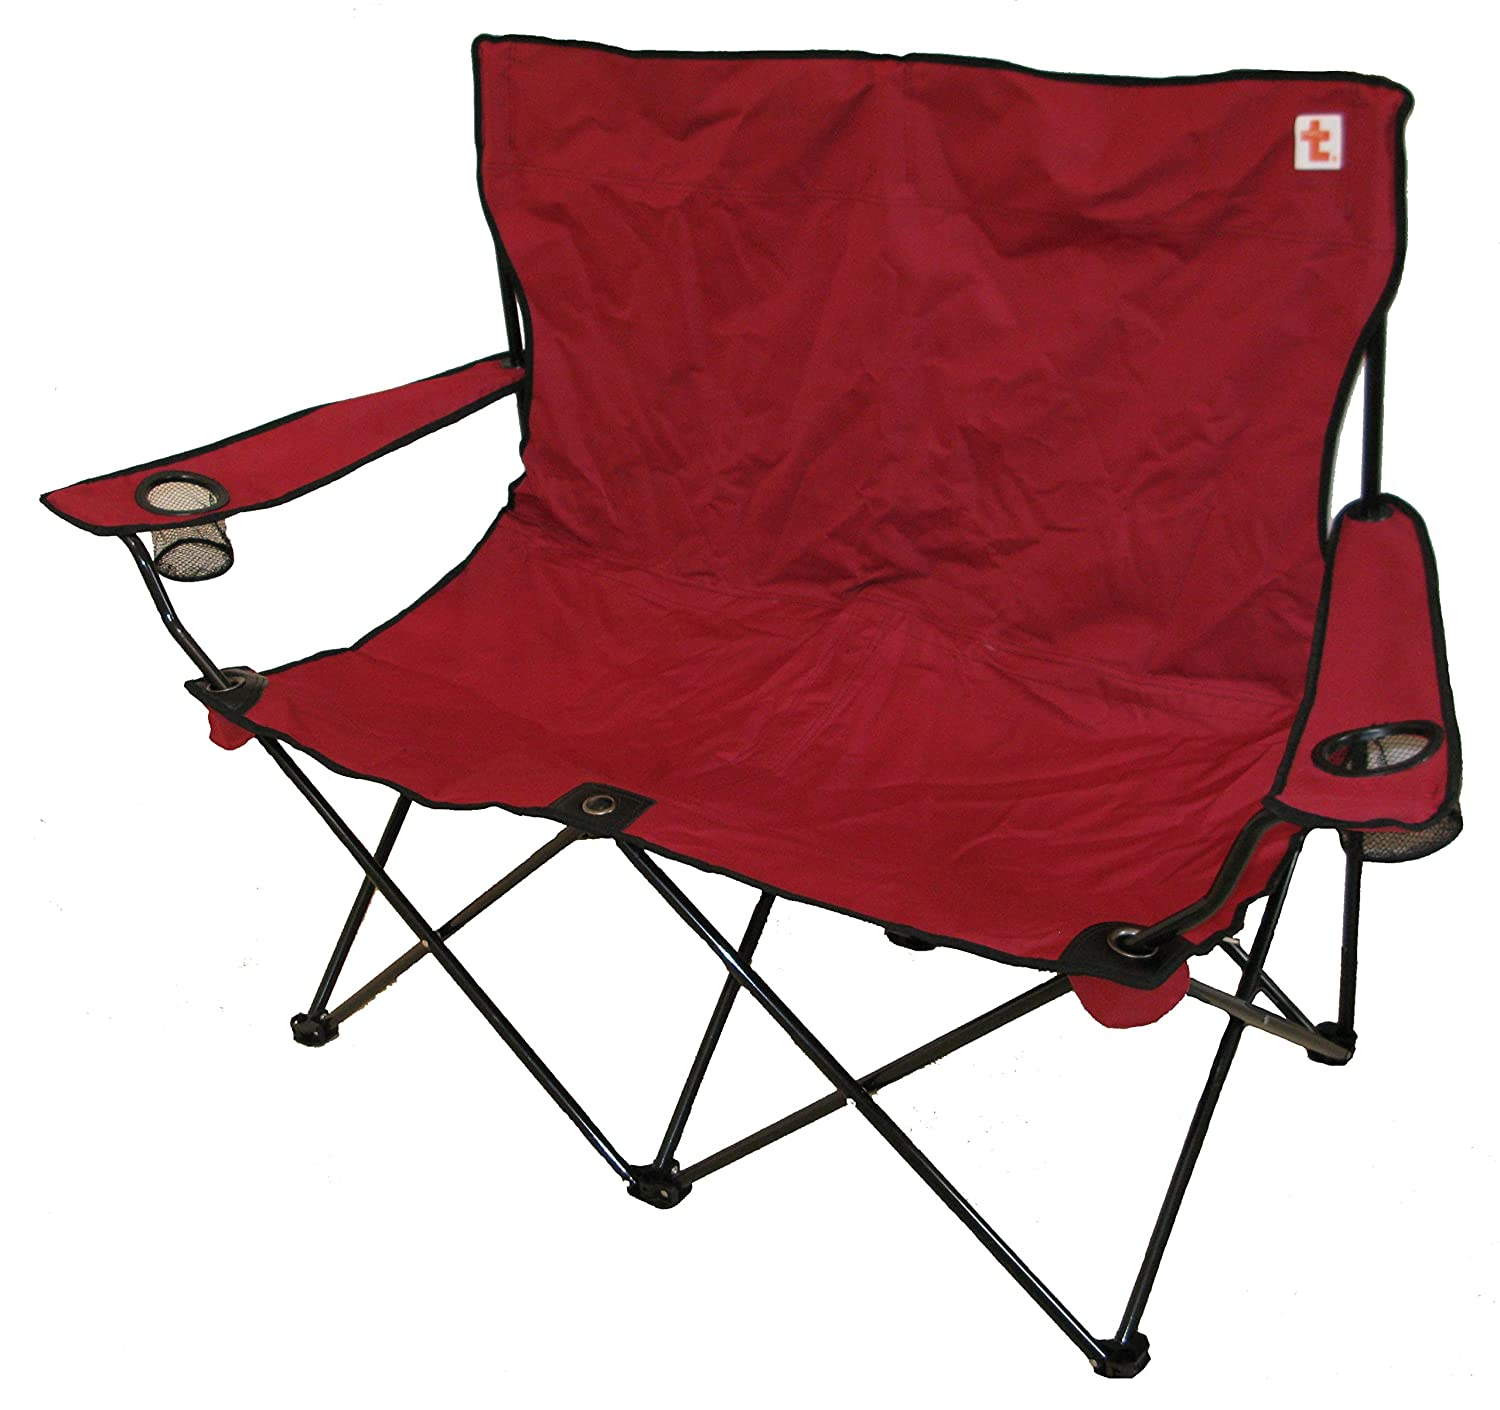 Double Folding Camping Chair Big Strong Purple Amazon